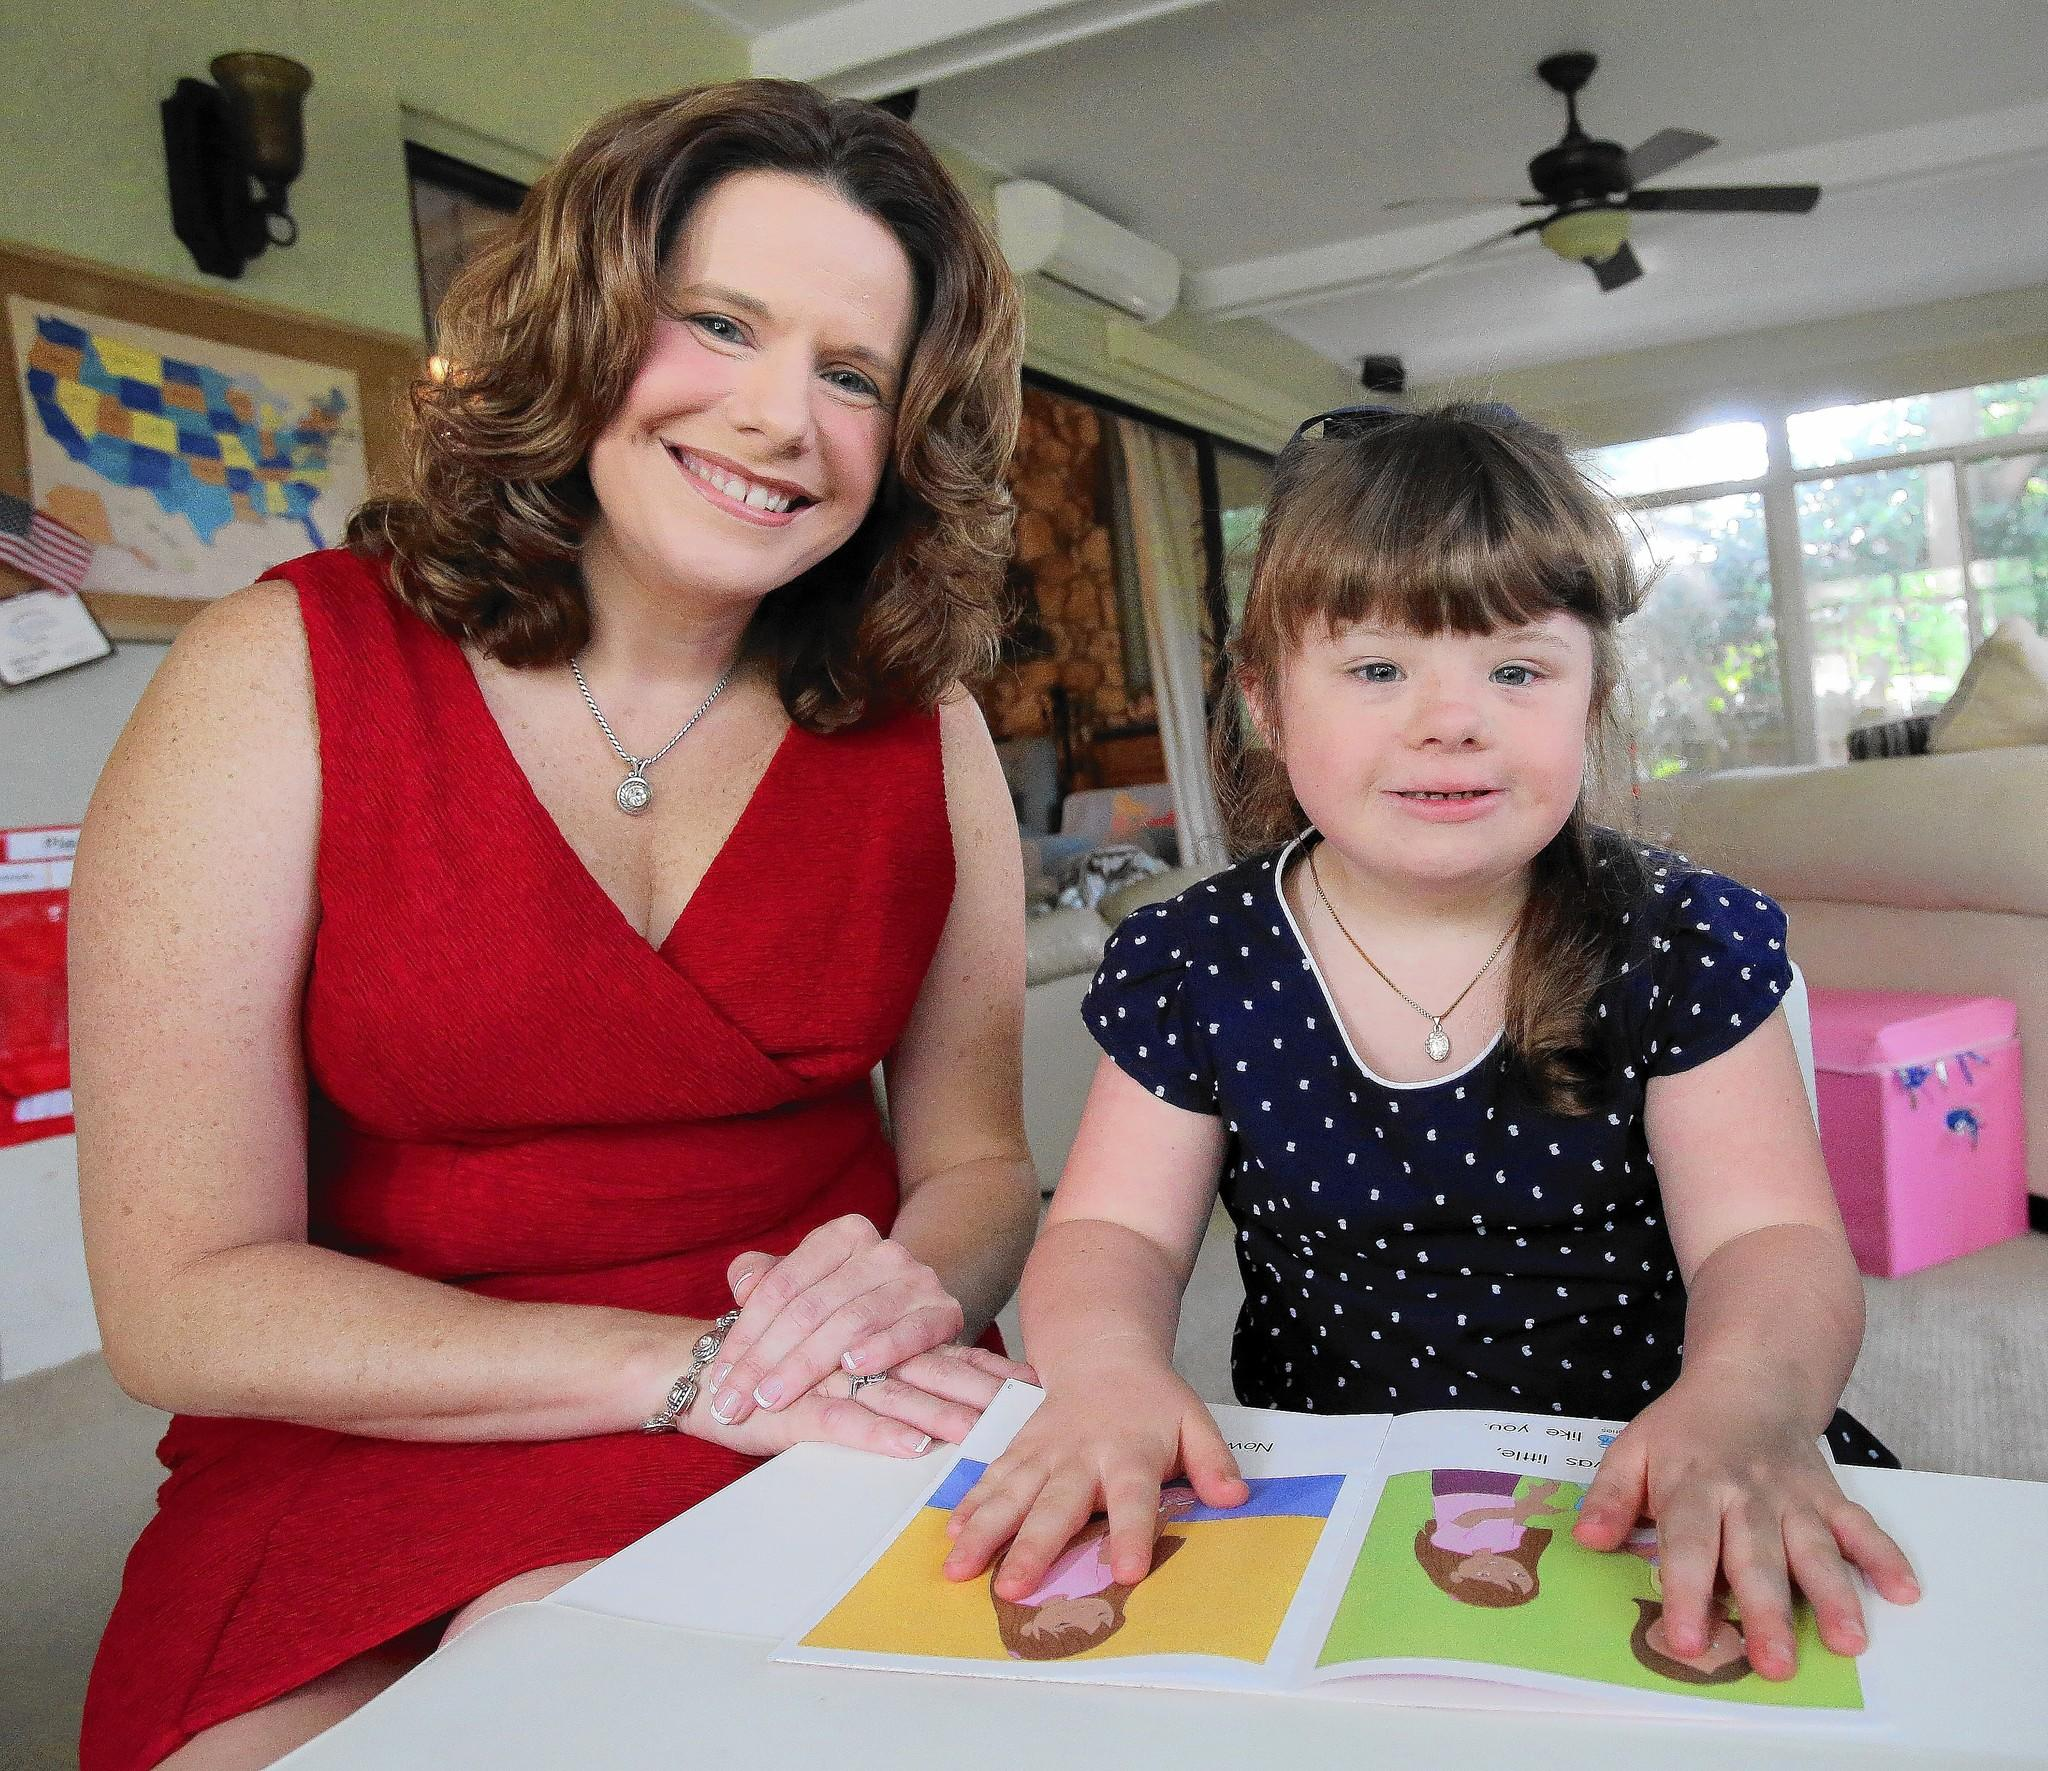 Julie Kleffel with her daughter, Faith, 7, in their Longwood home. Faith has Down Syndrome, and Kleffel hopes that the new state-supported scholarship will help cover the cost of tutors and therapists Faith needs.